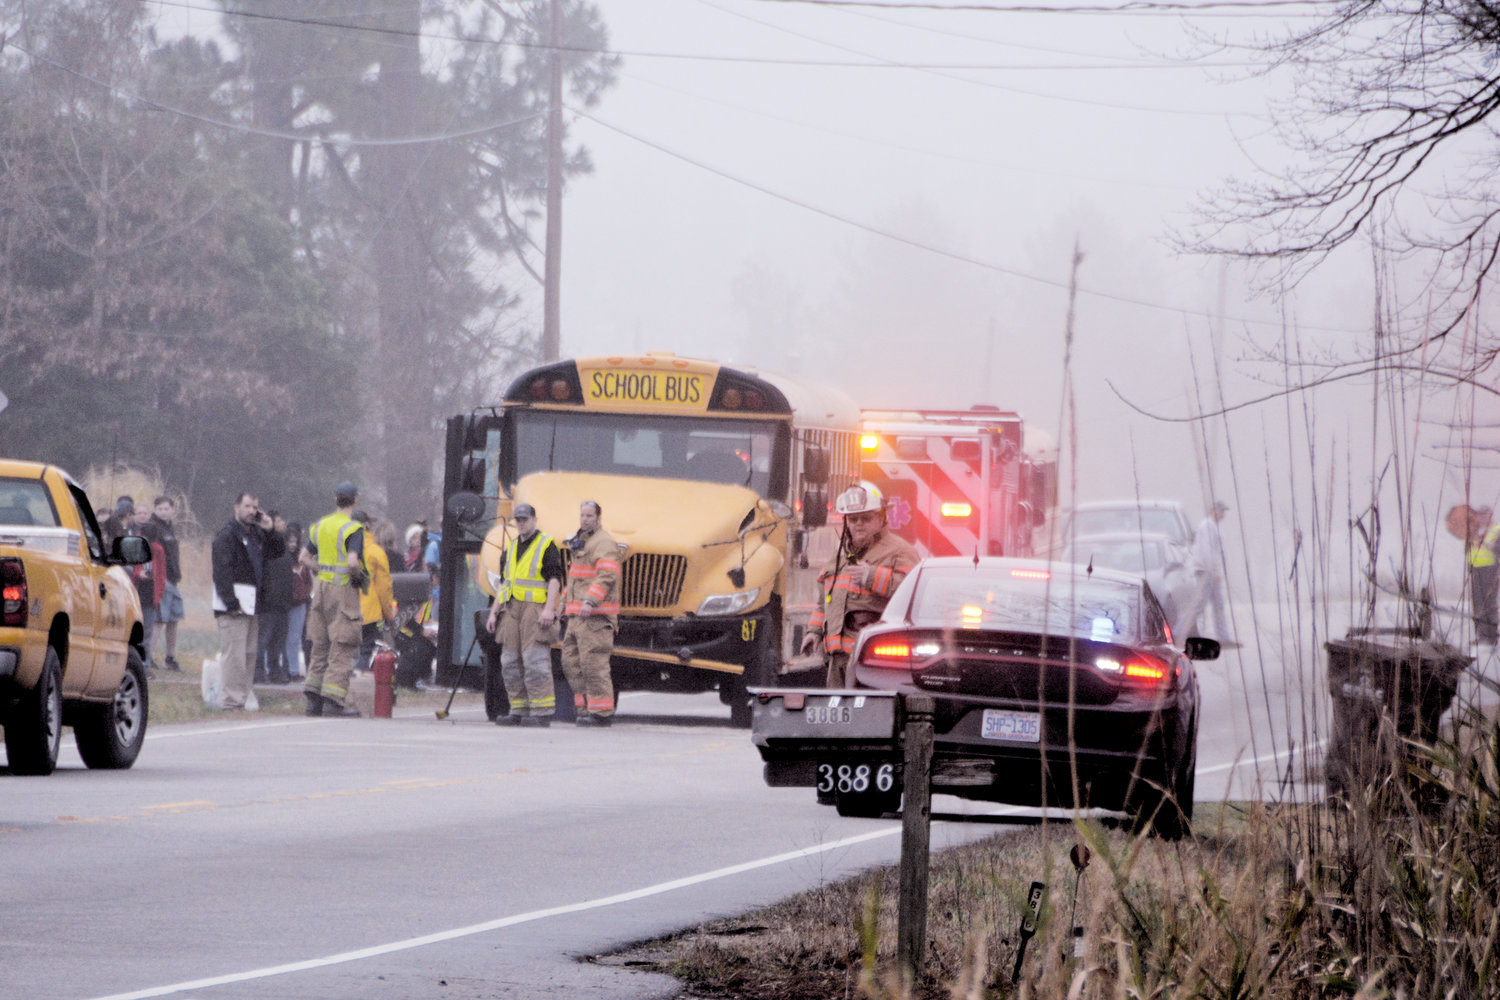 Driver injured in school bus wreck | The Daily Record